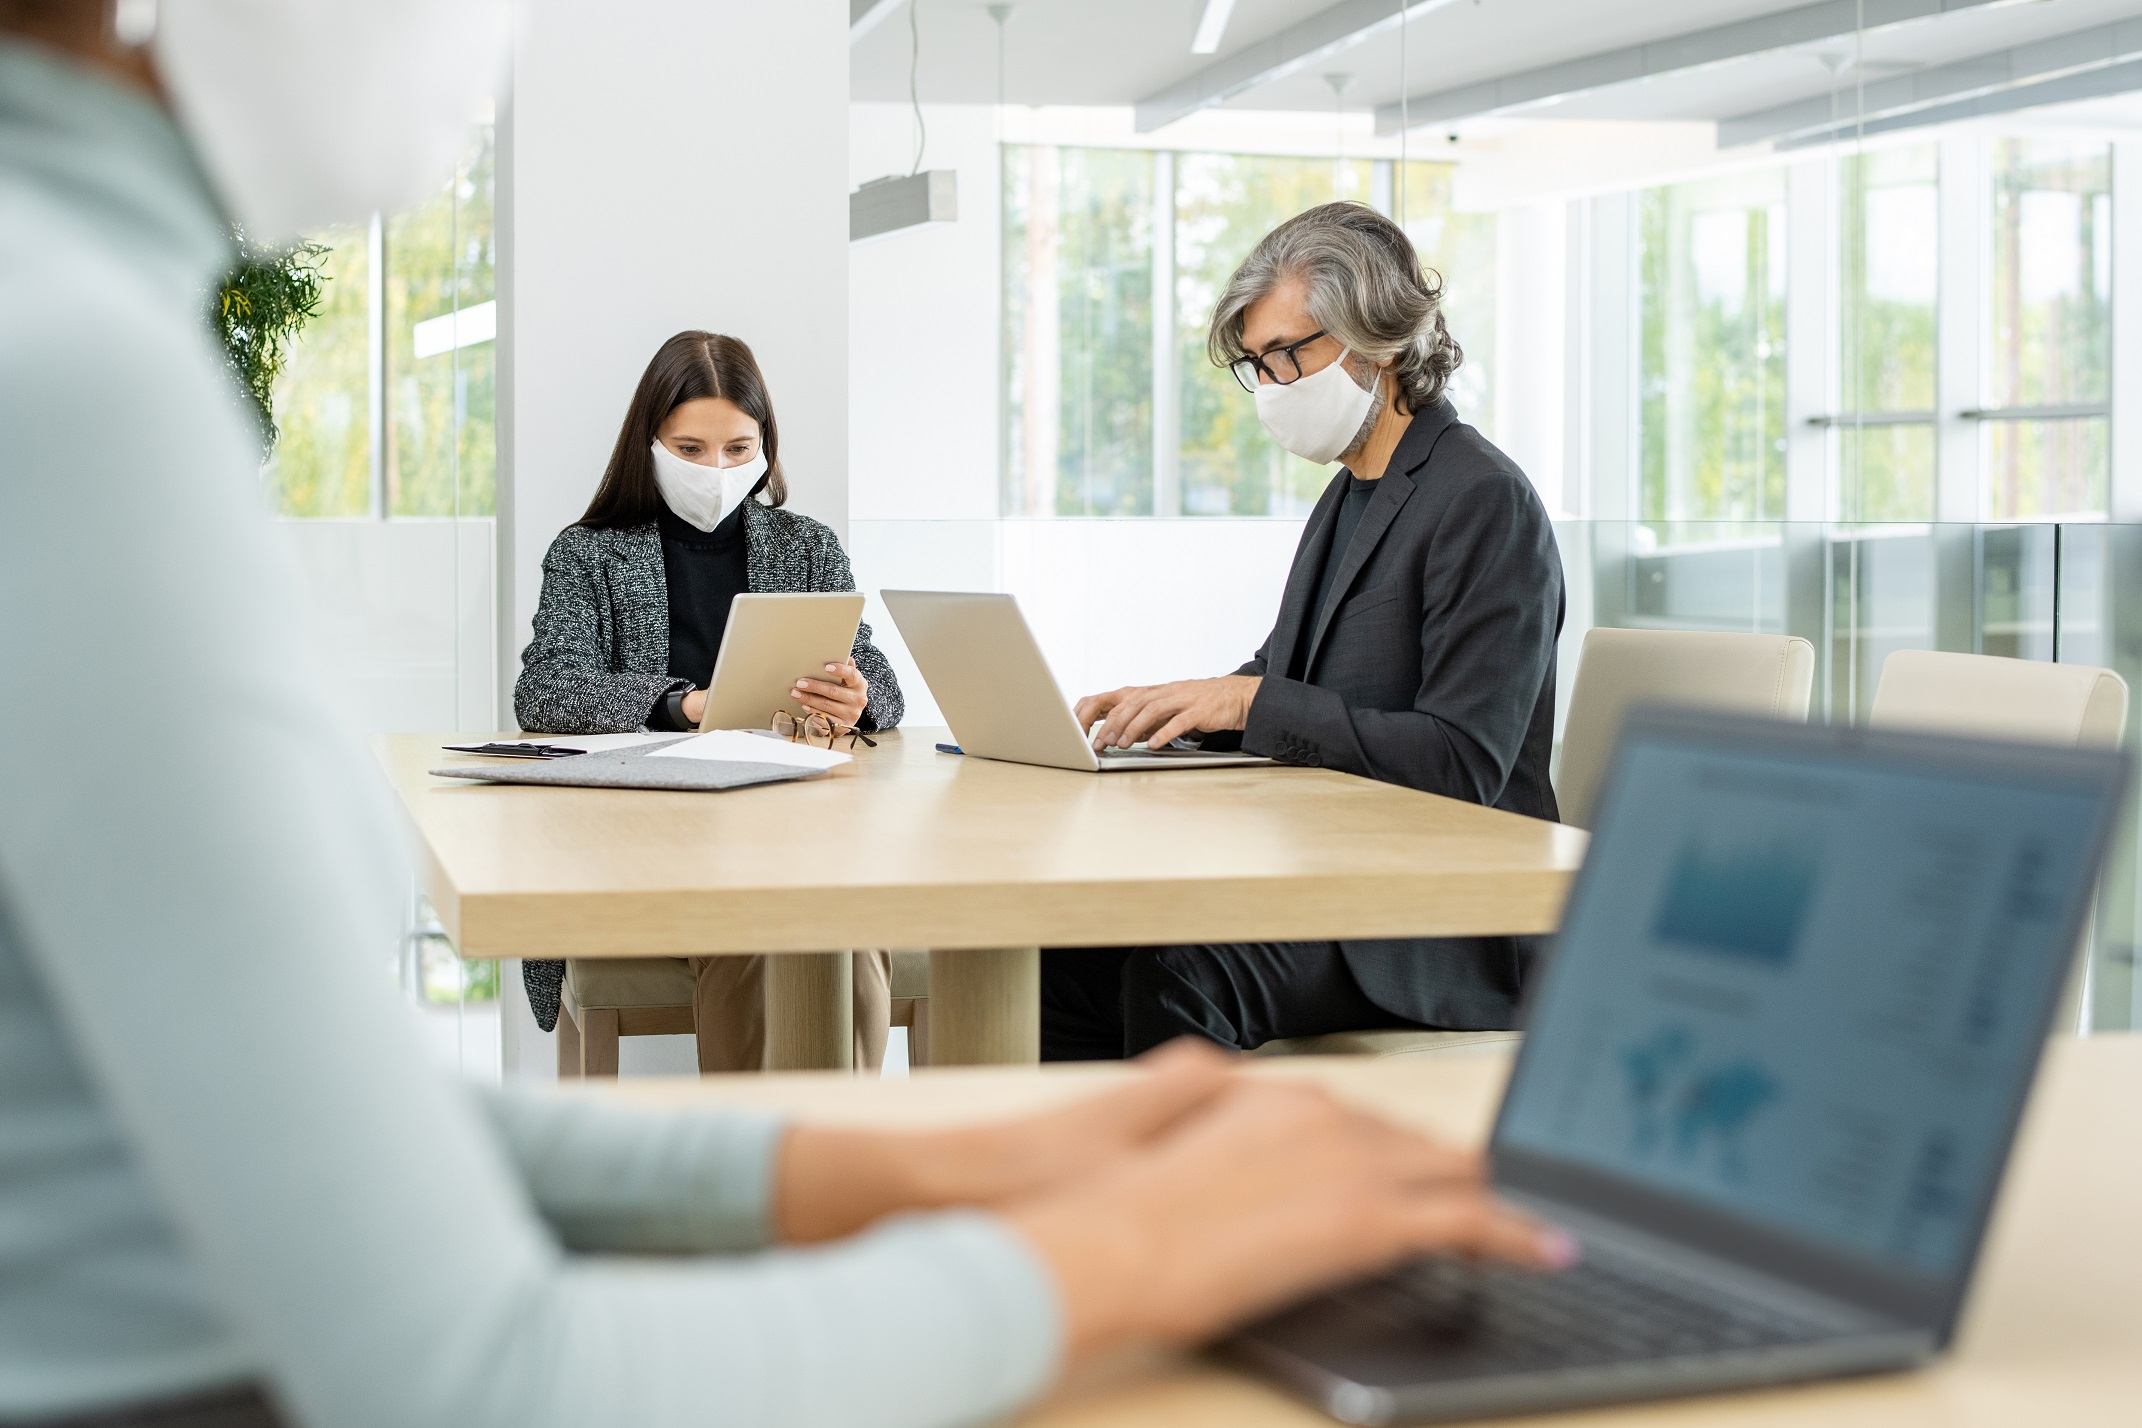 Networking during a global pandemic